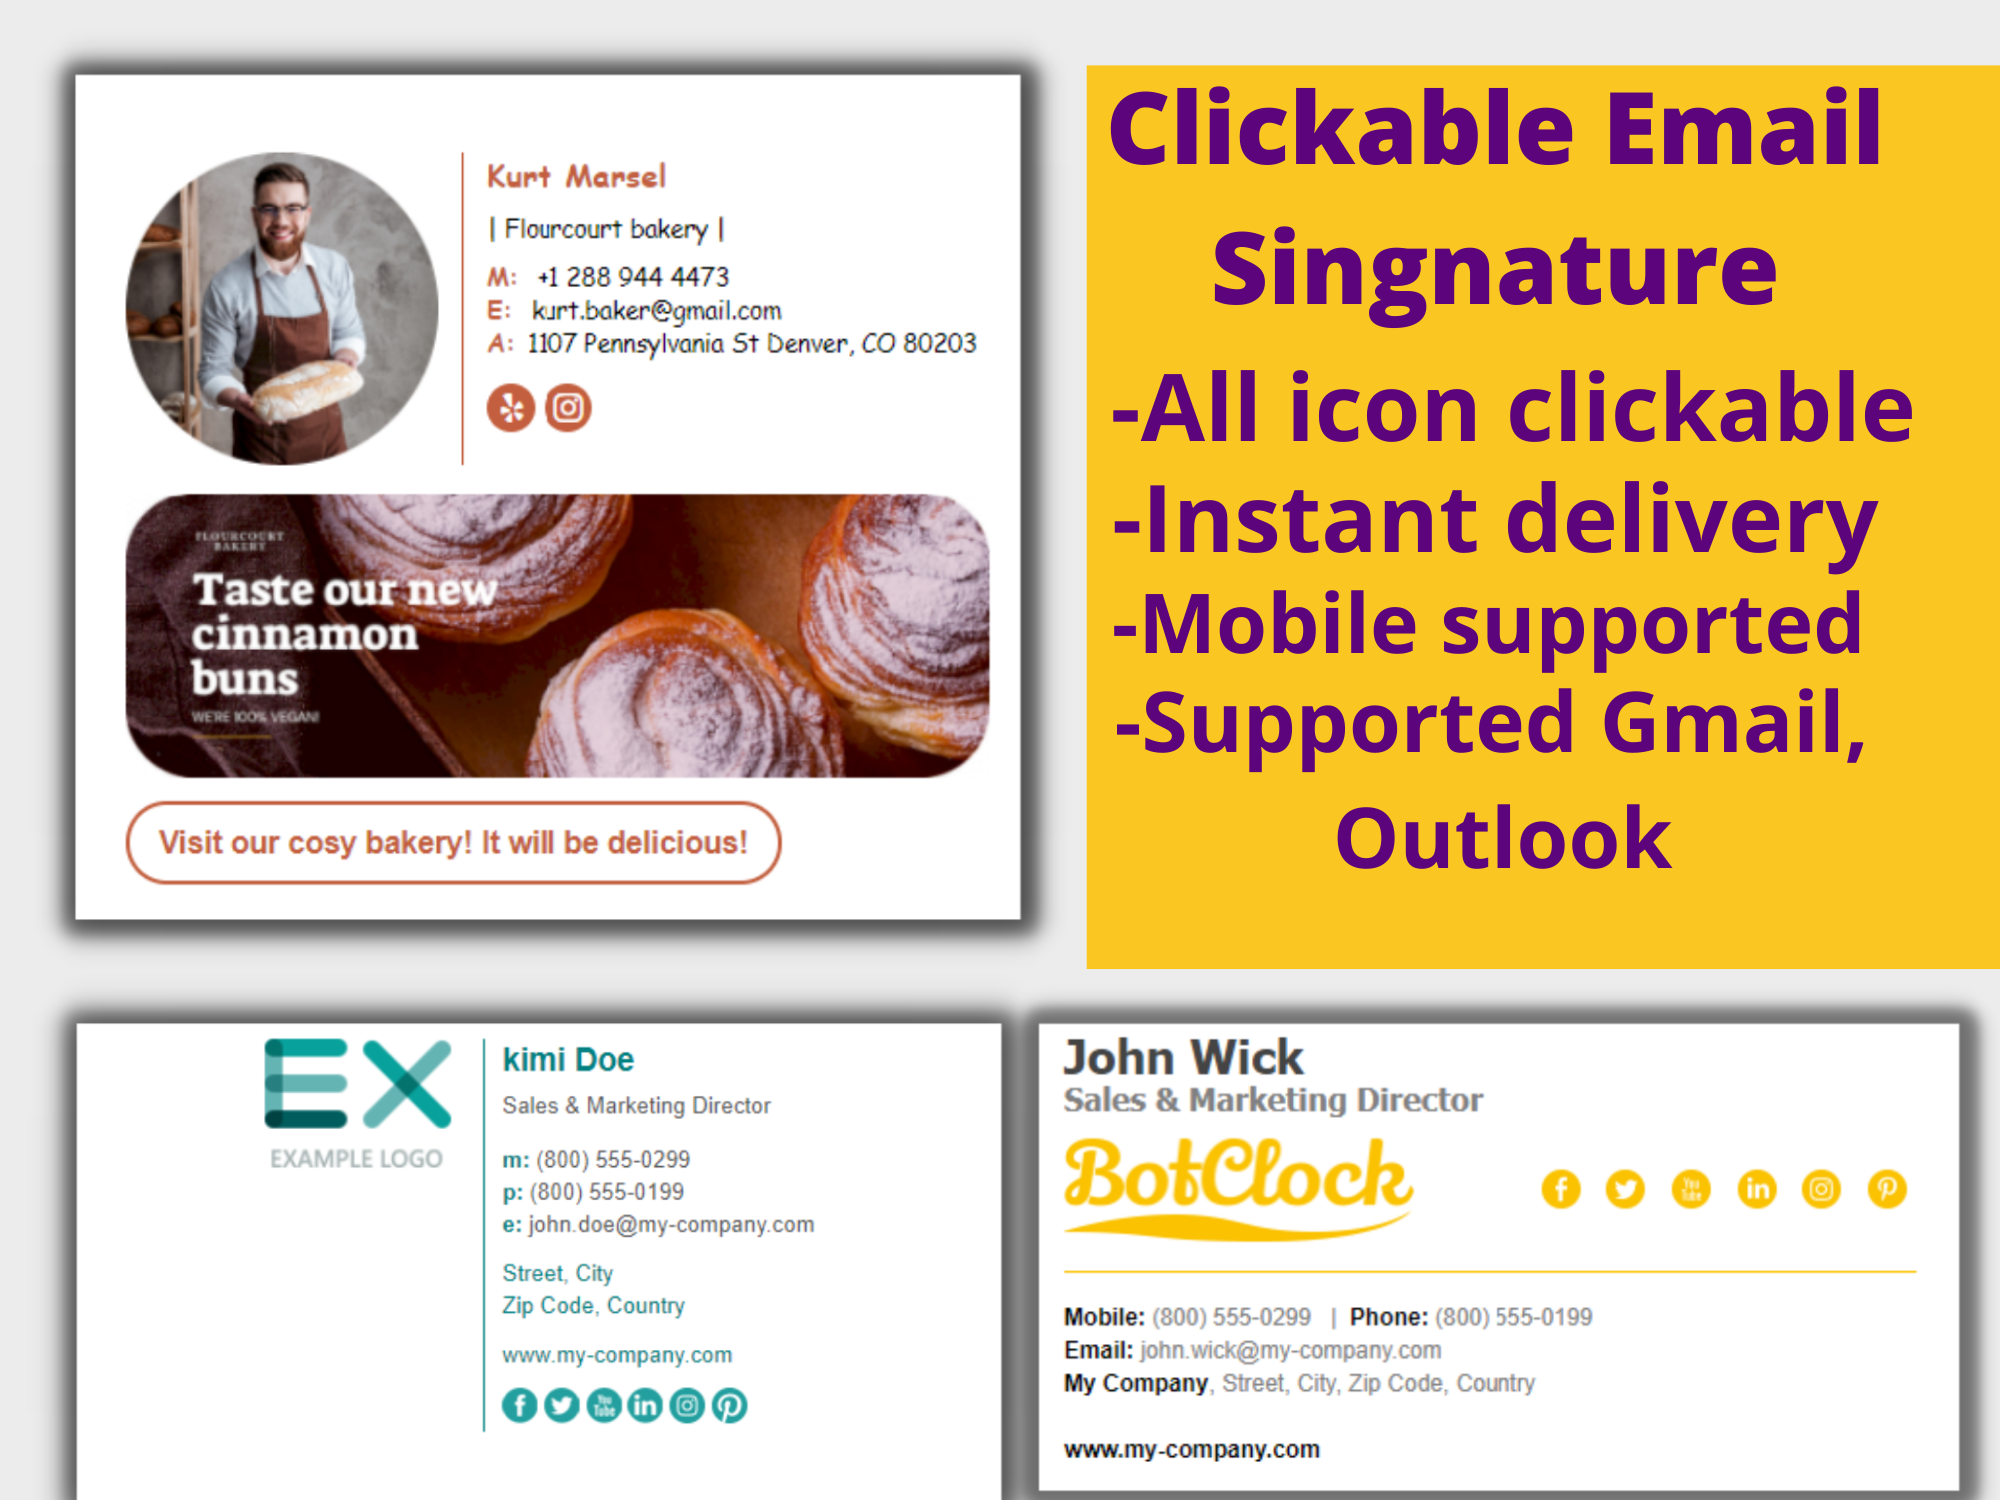 I Will Design Professional Looking Clickable HTML Email Signature,  Outlook Signature